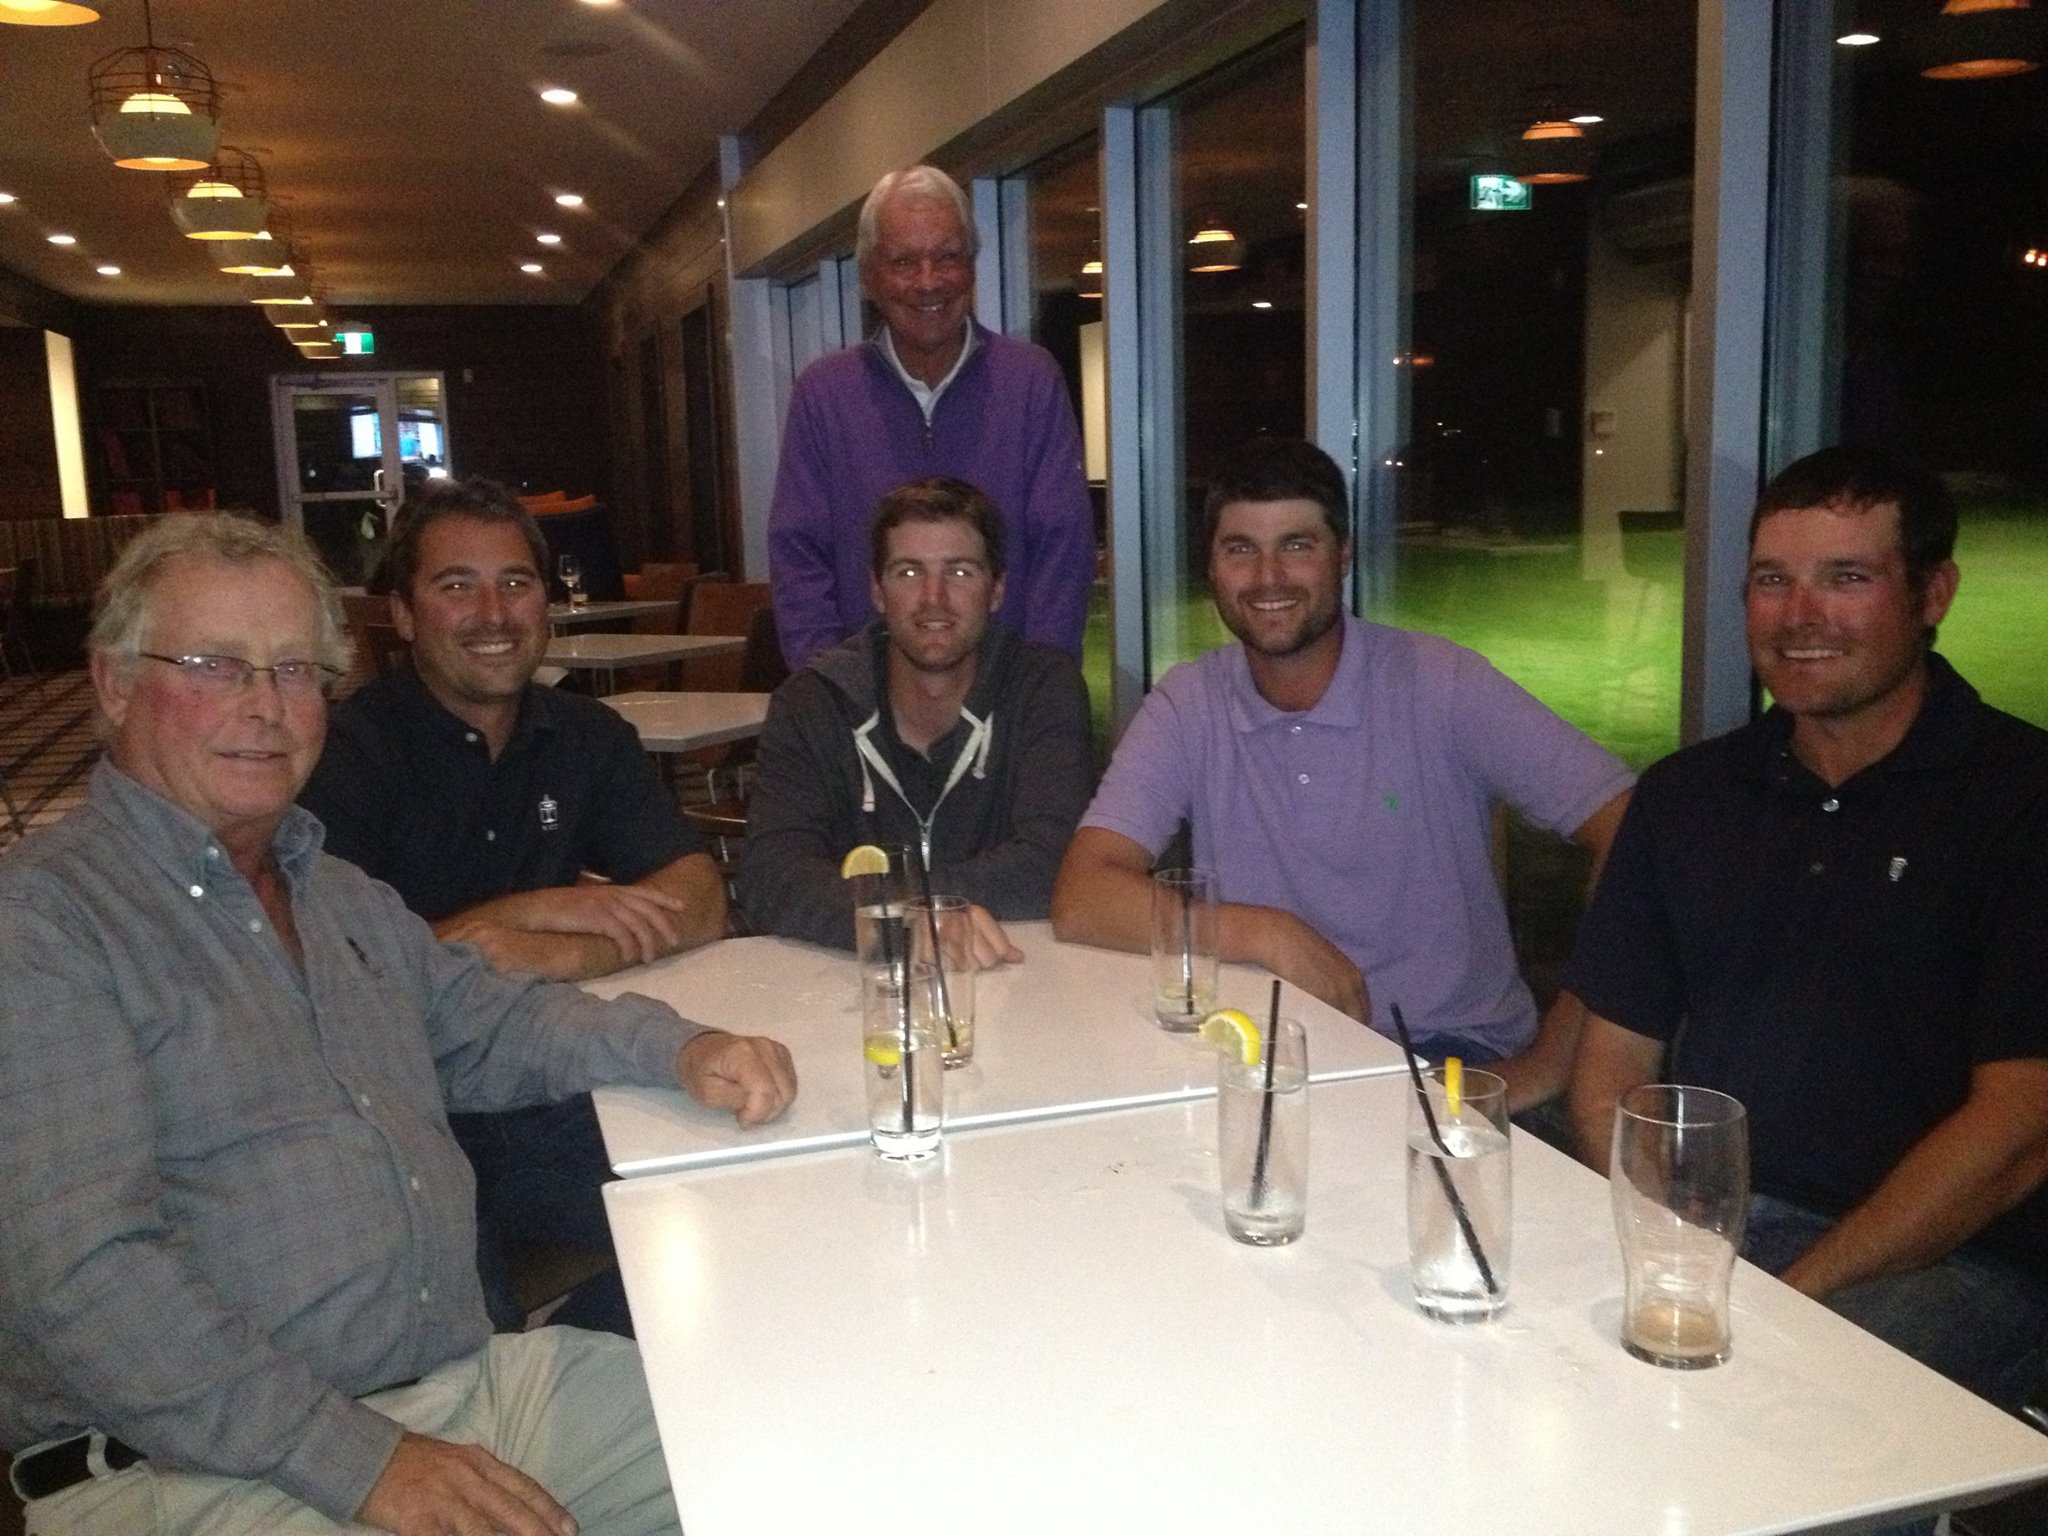 From left to right - Rod Whitman, Riley Johns, Bill Coore, Andrew Littlefield, Trevor Dormer, Keith Rhebb